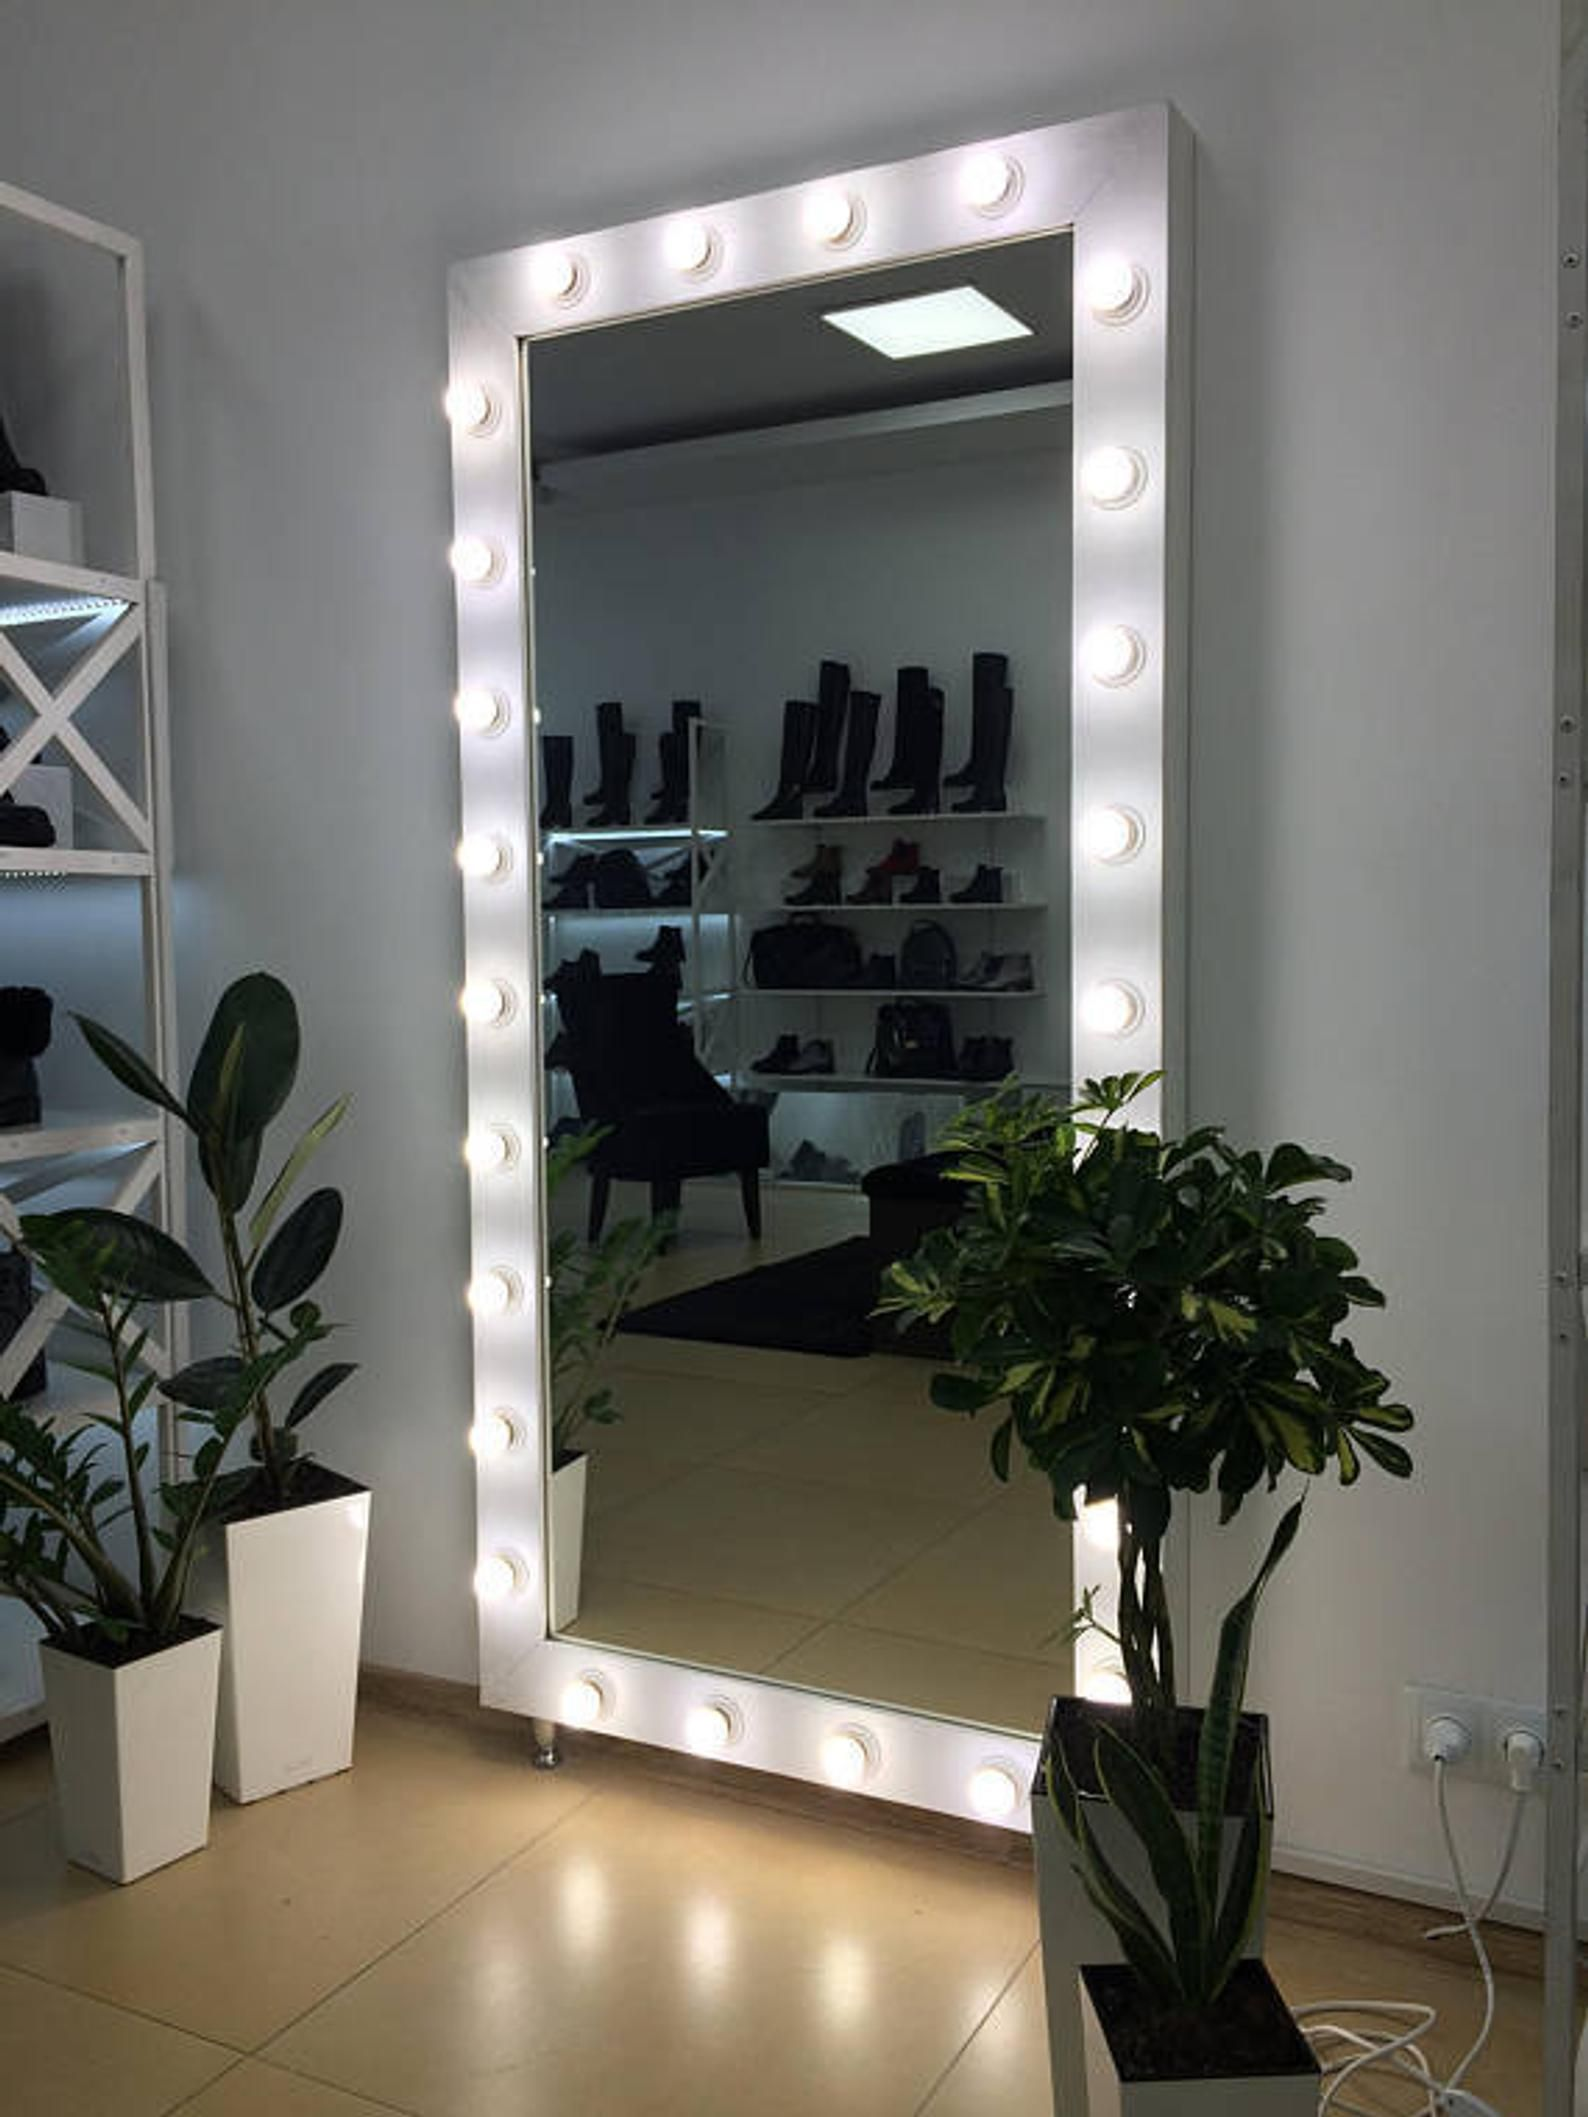 Showroom Mirror With Lights Mirror For Showroom With Lights Etsy Mirror With Lights Bedroom Mirror Beauty Room